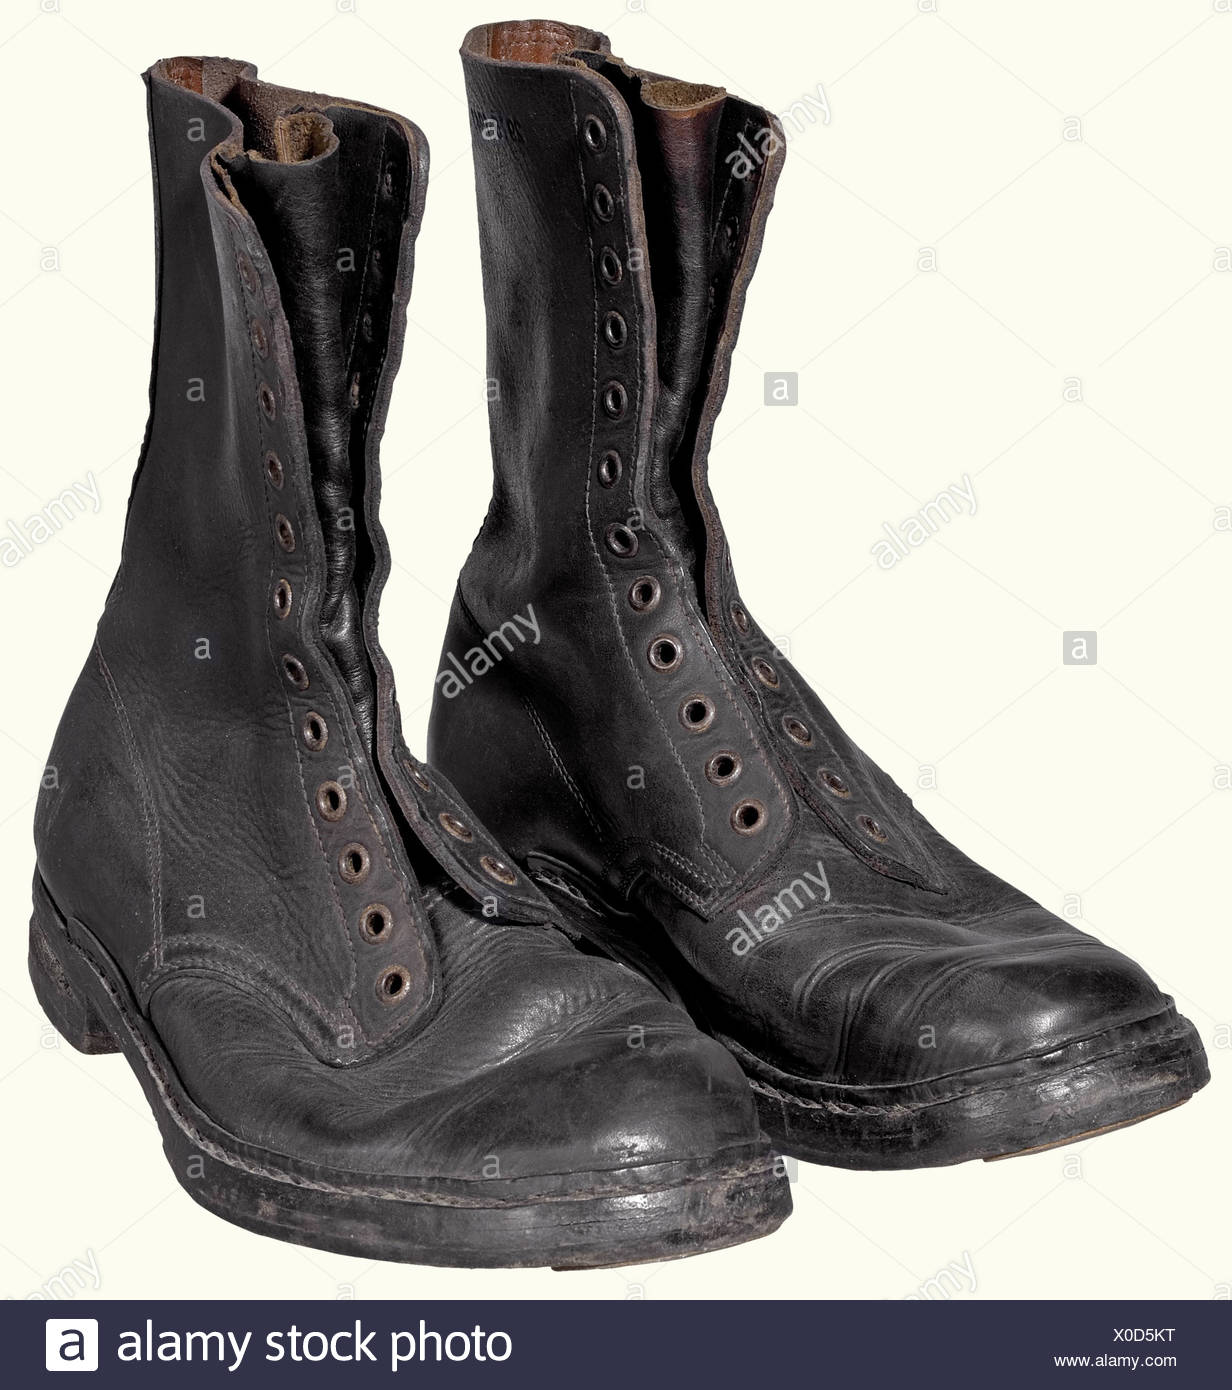 A 2nd model paratrooper boots., Black leather, leather soles (resoled, heavily worn, iron reinforcement). Heels are grooved for ski bindings. Twelve eyelets for the laces (missing). historic, historical, 1930s, 1930s, 20th century, Air Force, branch of service, branches of service, armed service, armed services, military, militaria, air forces, object, objects, stills, clipping, clippings, cut out, cut-out, cut-outs, uniform, uniforms, piece of clothing, clothes, outfit, outfits, accessory, accessories, utensil, piece of equipment, utensils, Additional-Rights-Clearances-NA - Stock Image